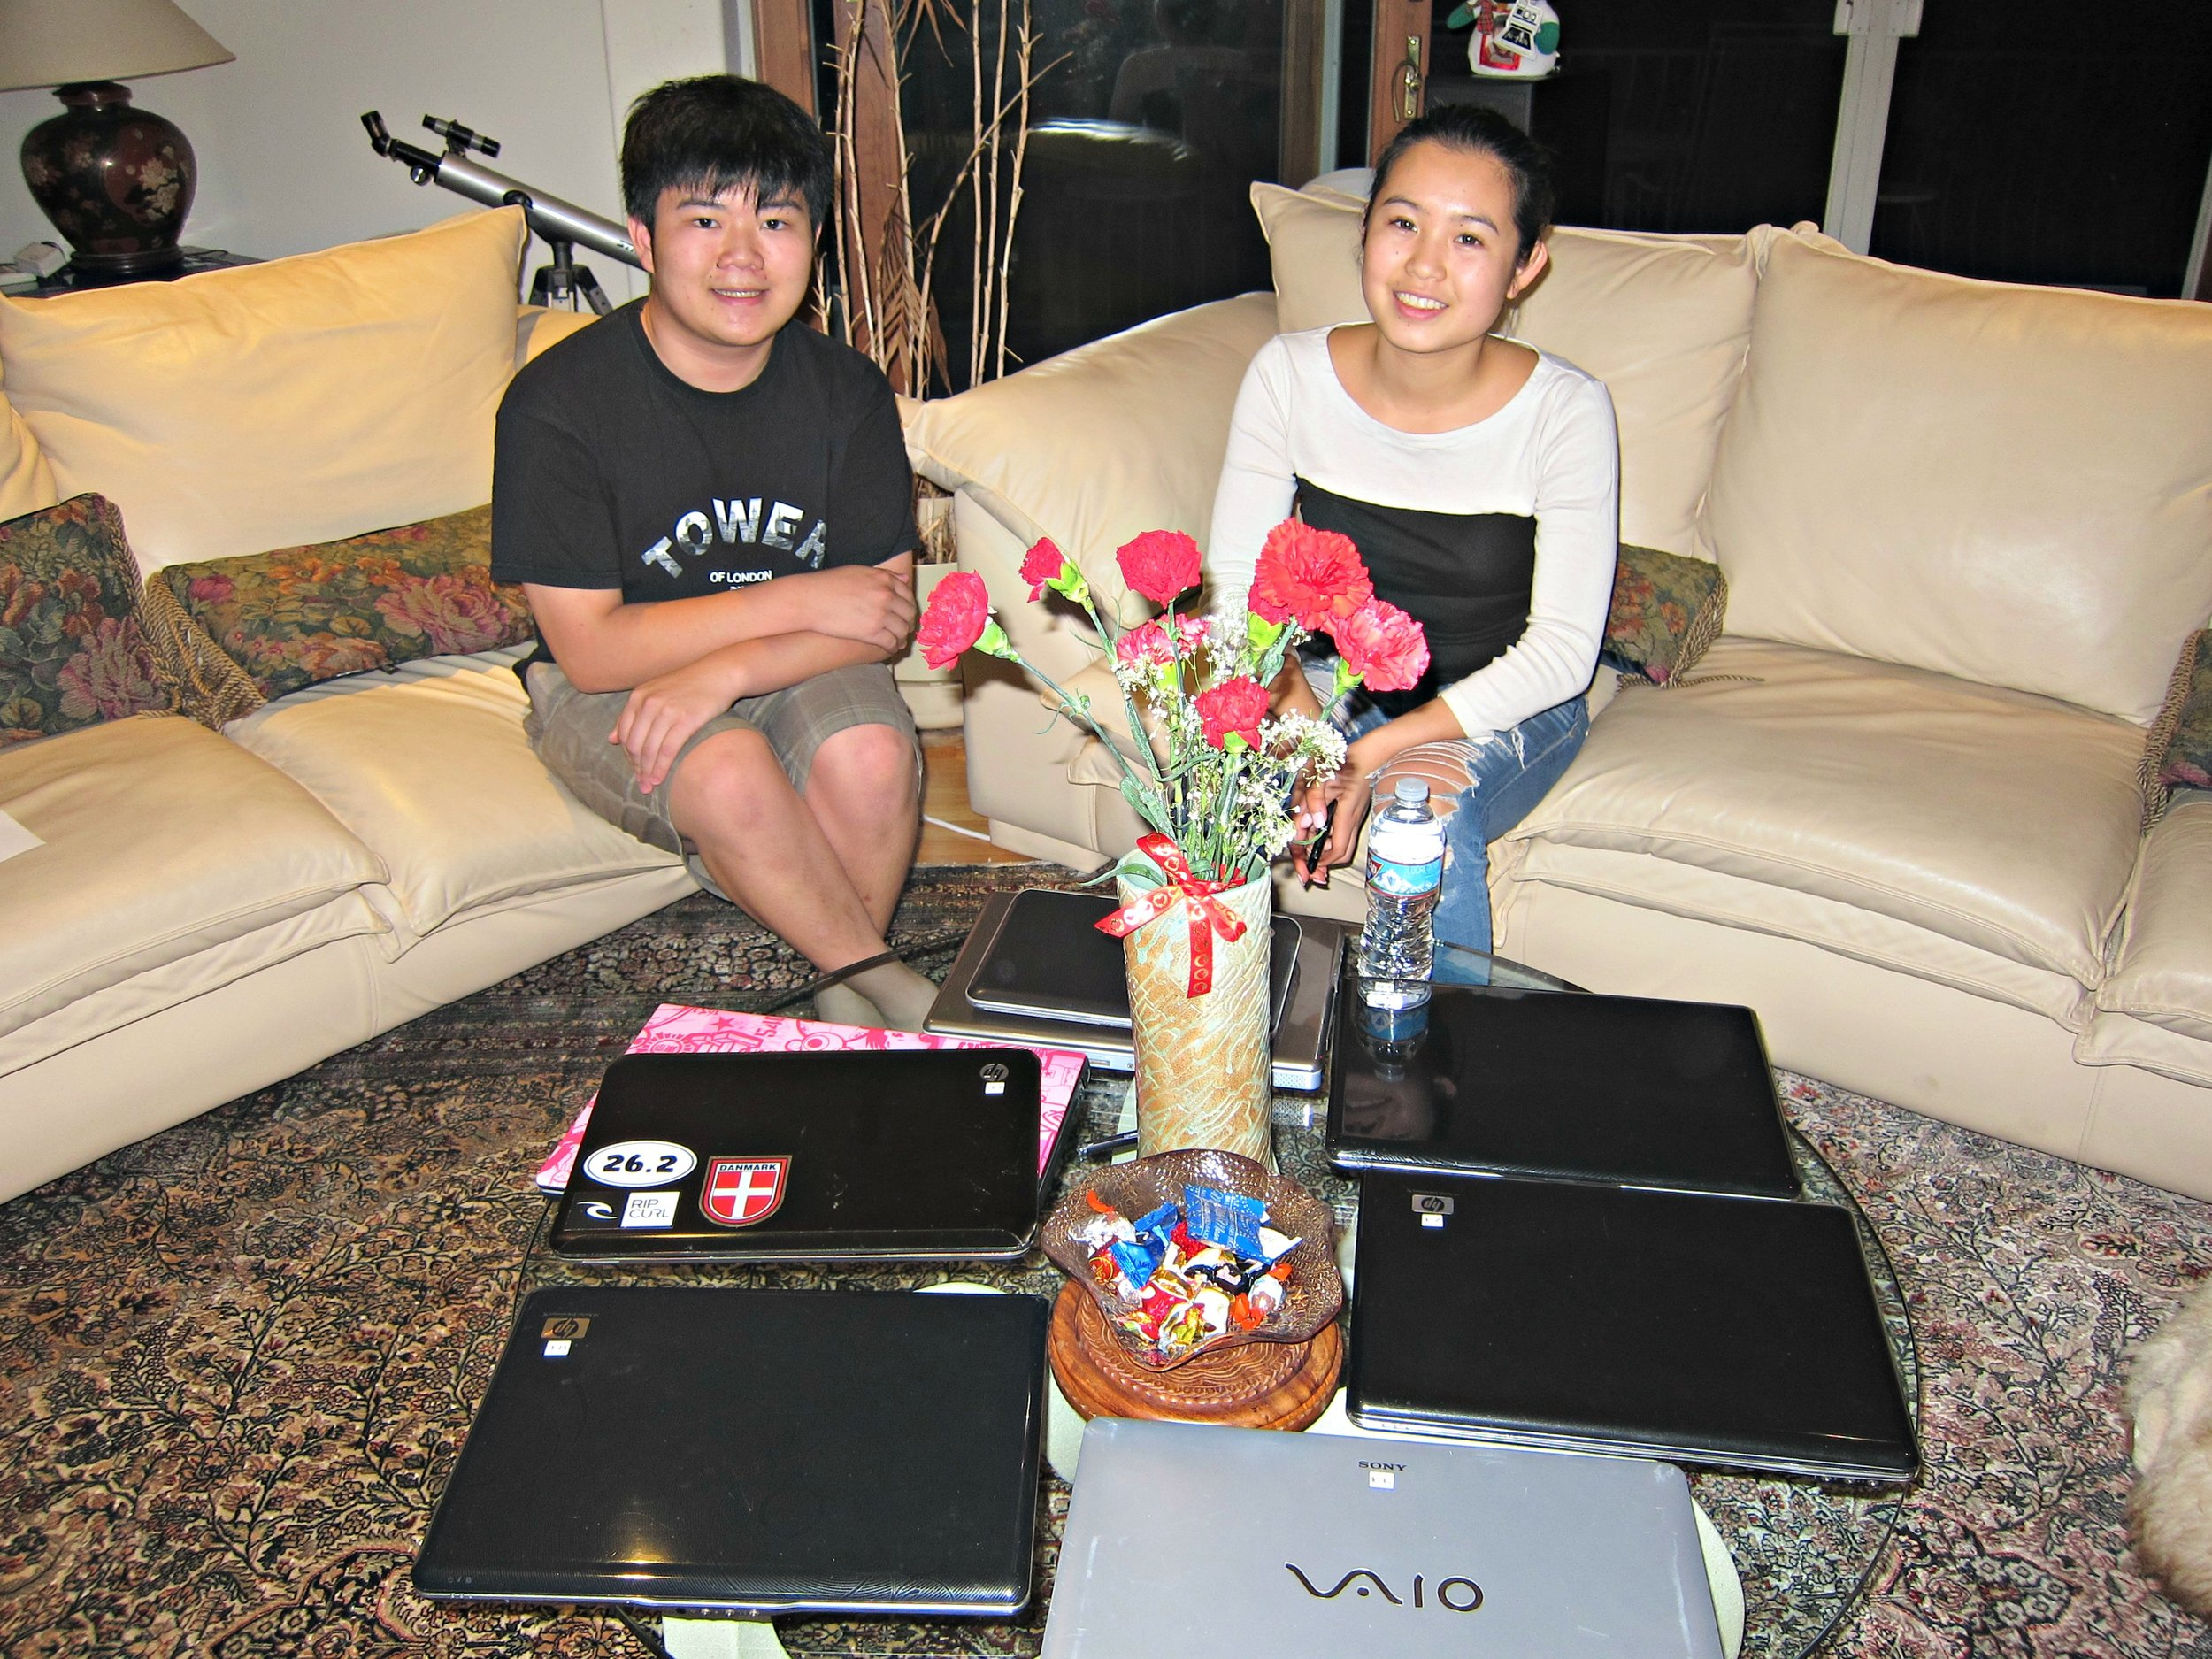 Terence Lee , LAHS junior (left) and Shannon Yan, Stanford University freshman (right)